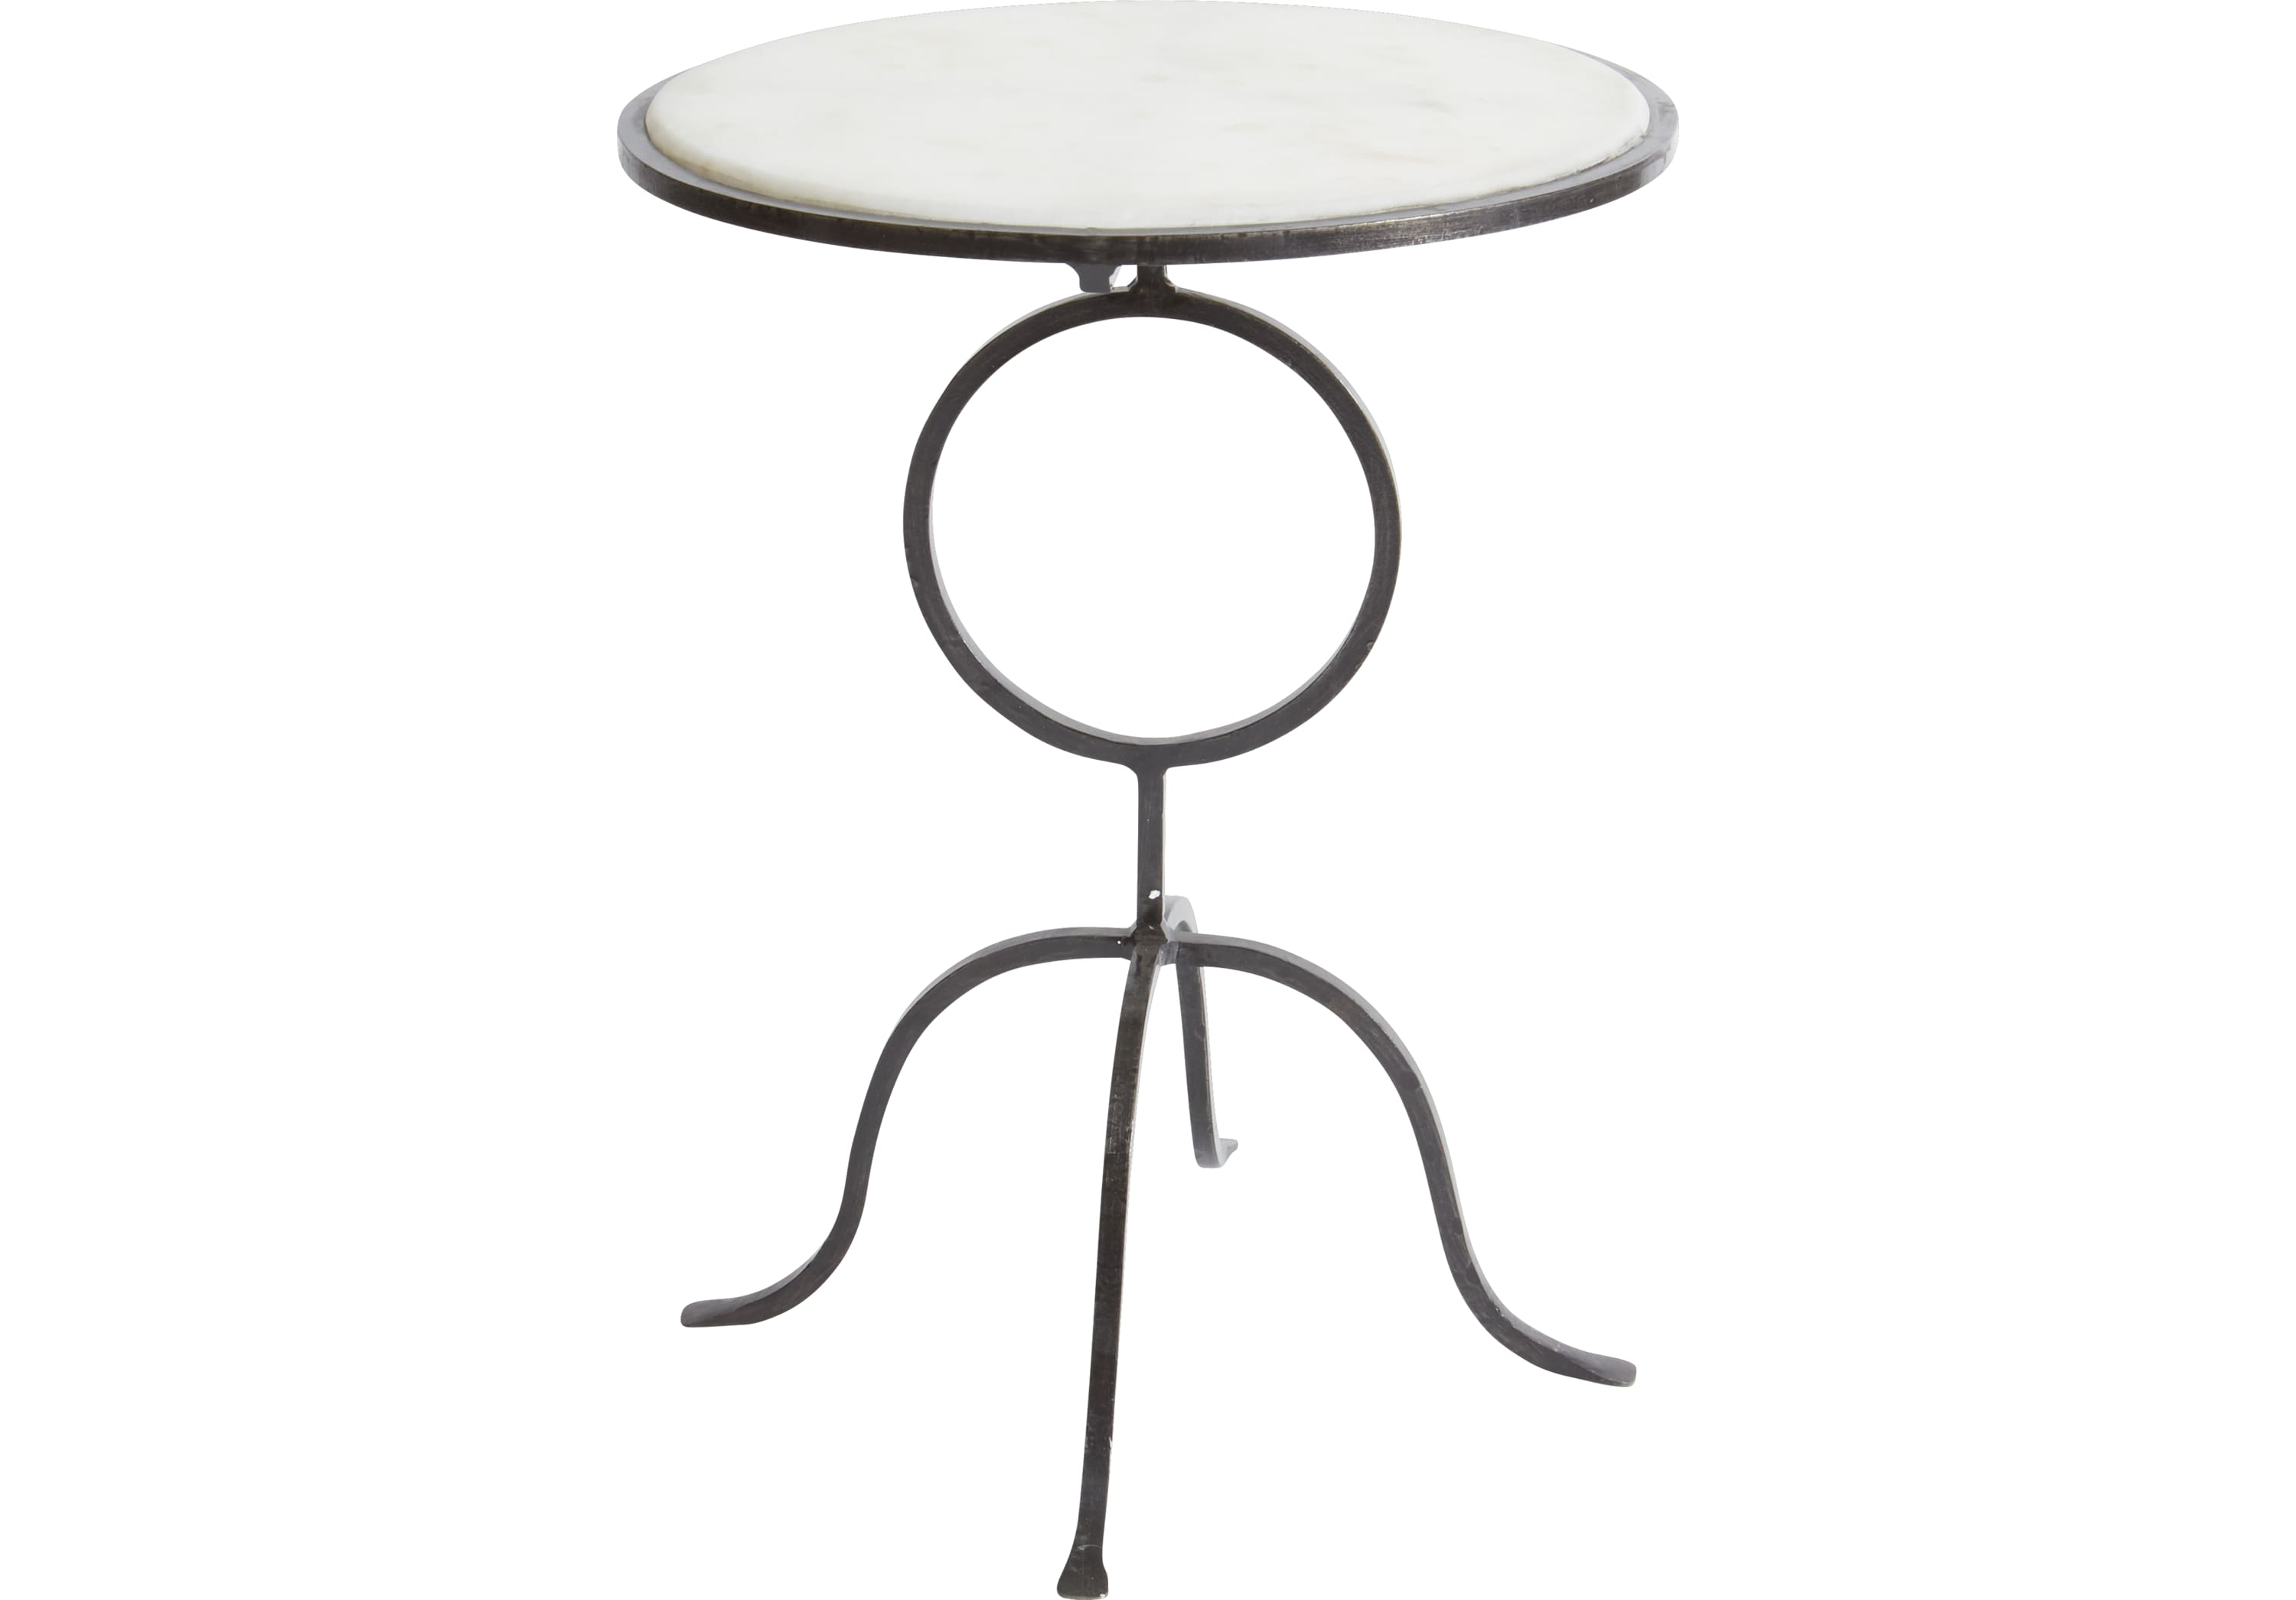 benthaven white accent table tables colors roll over zoom counter height bench living spaces end solid marble hampton bay patio black cube side brown round skirts decorator